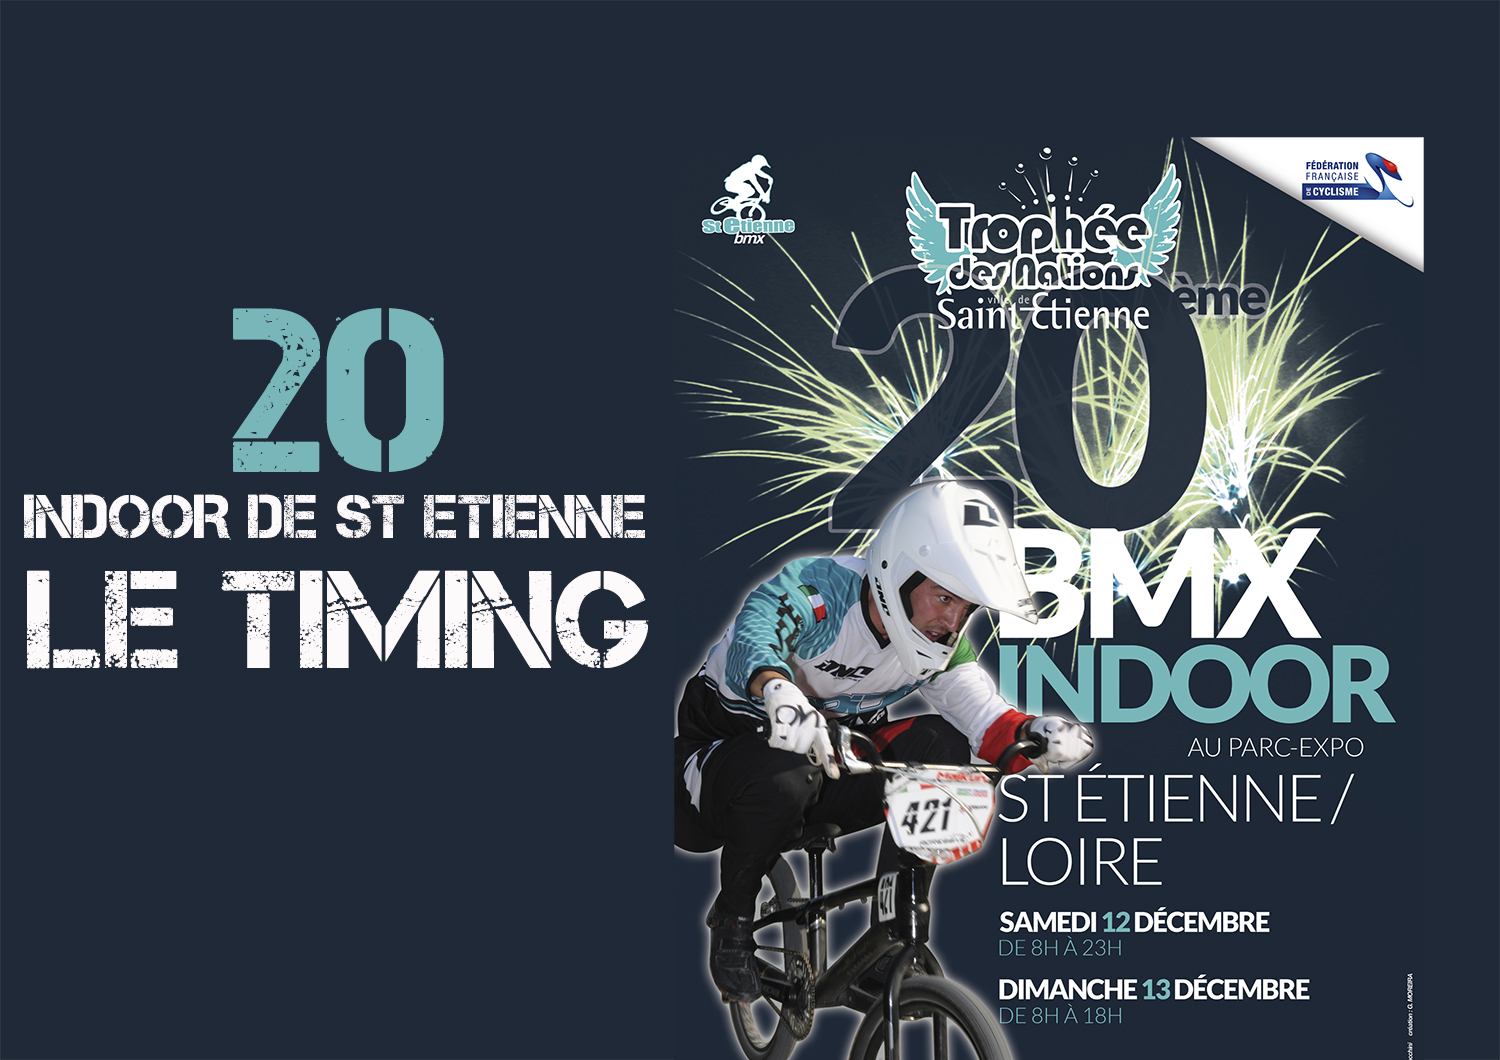 INFOS INDOOR ST ETIENNE: LE TIMING OFFICIEL